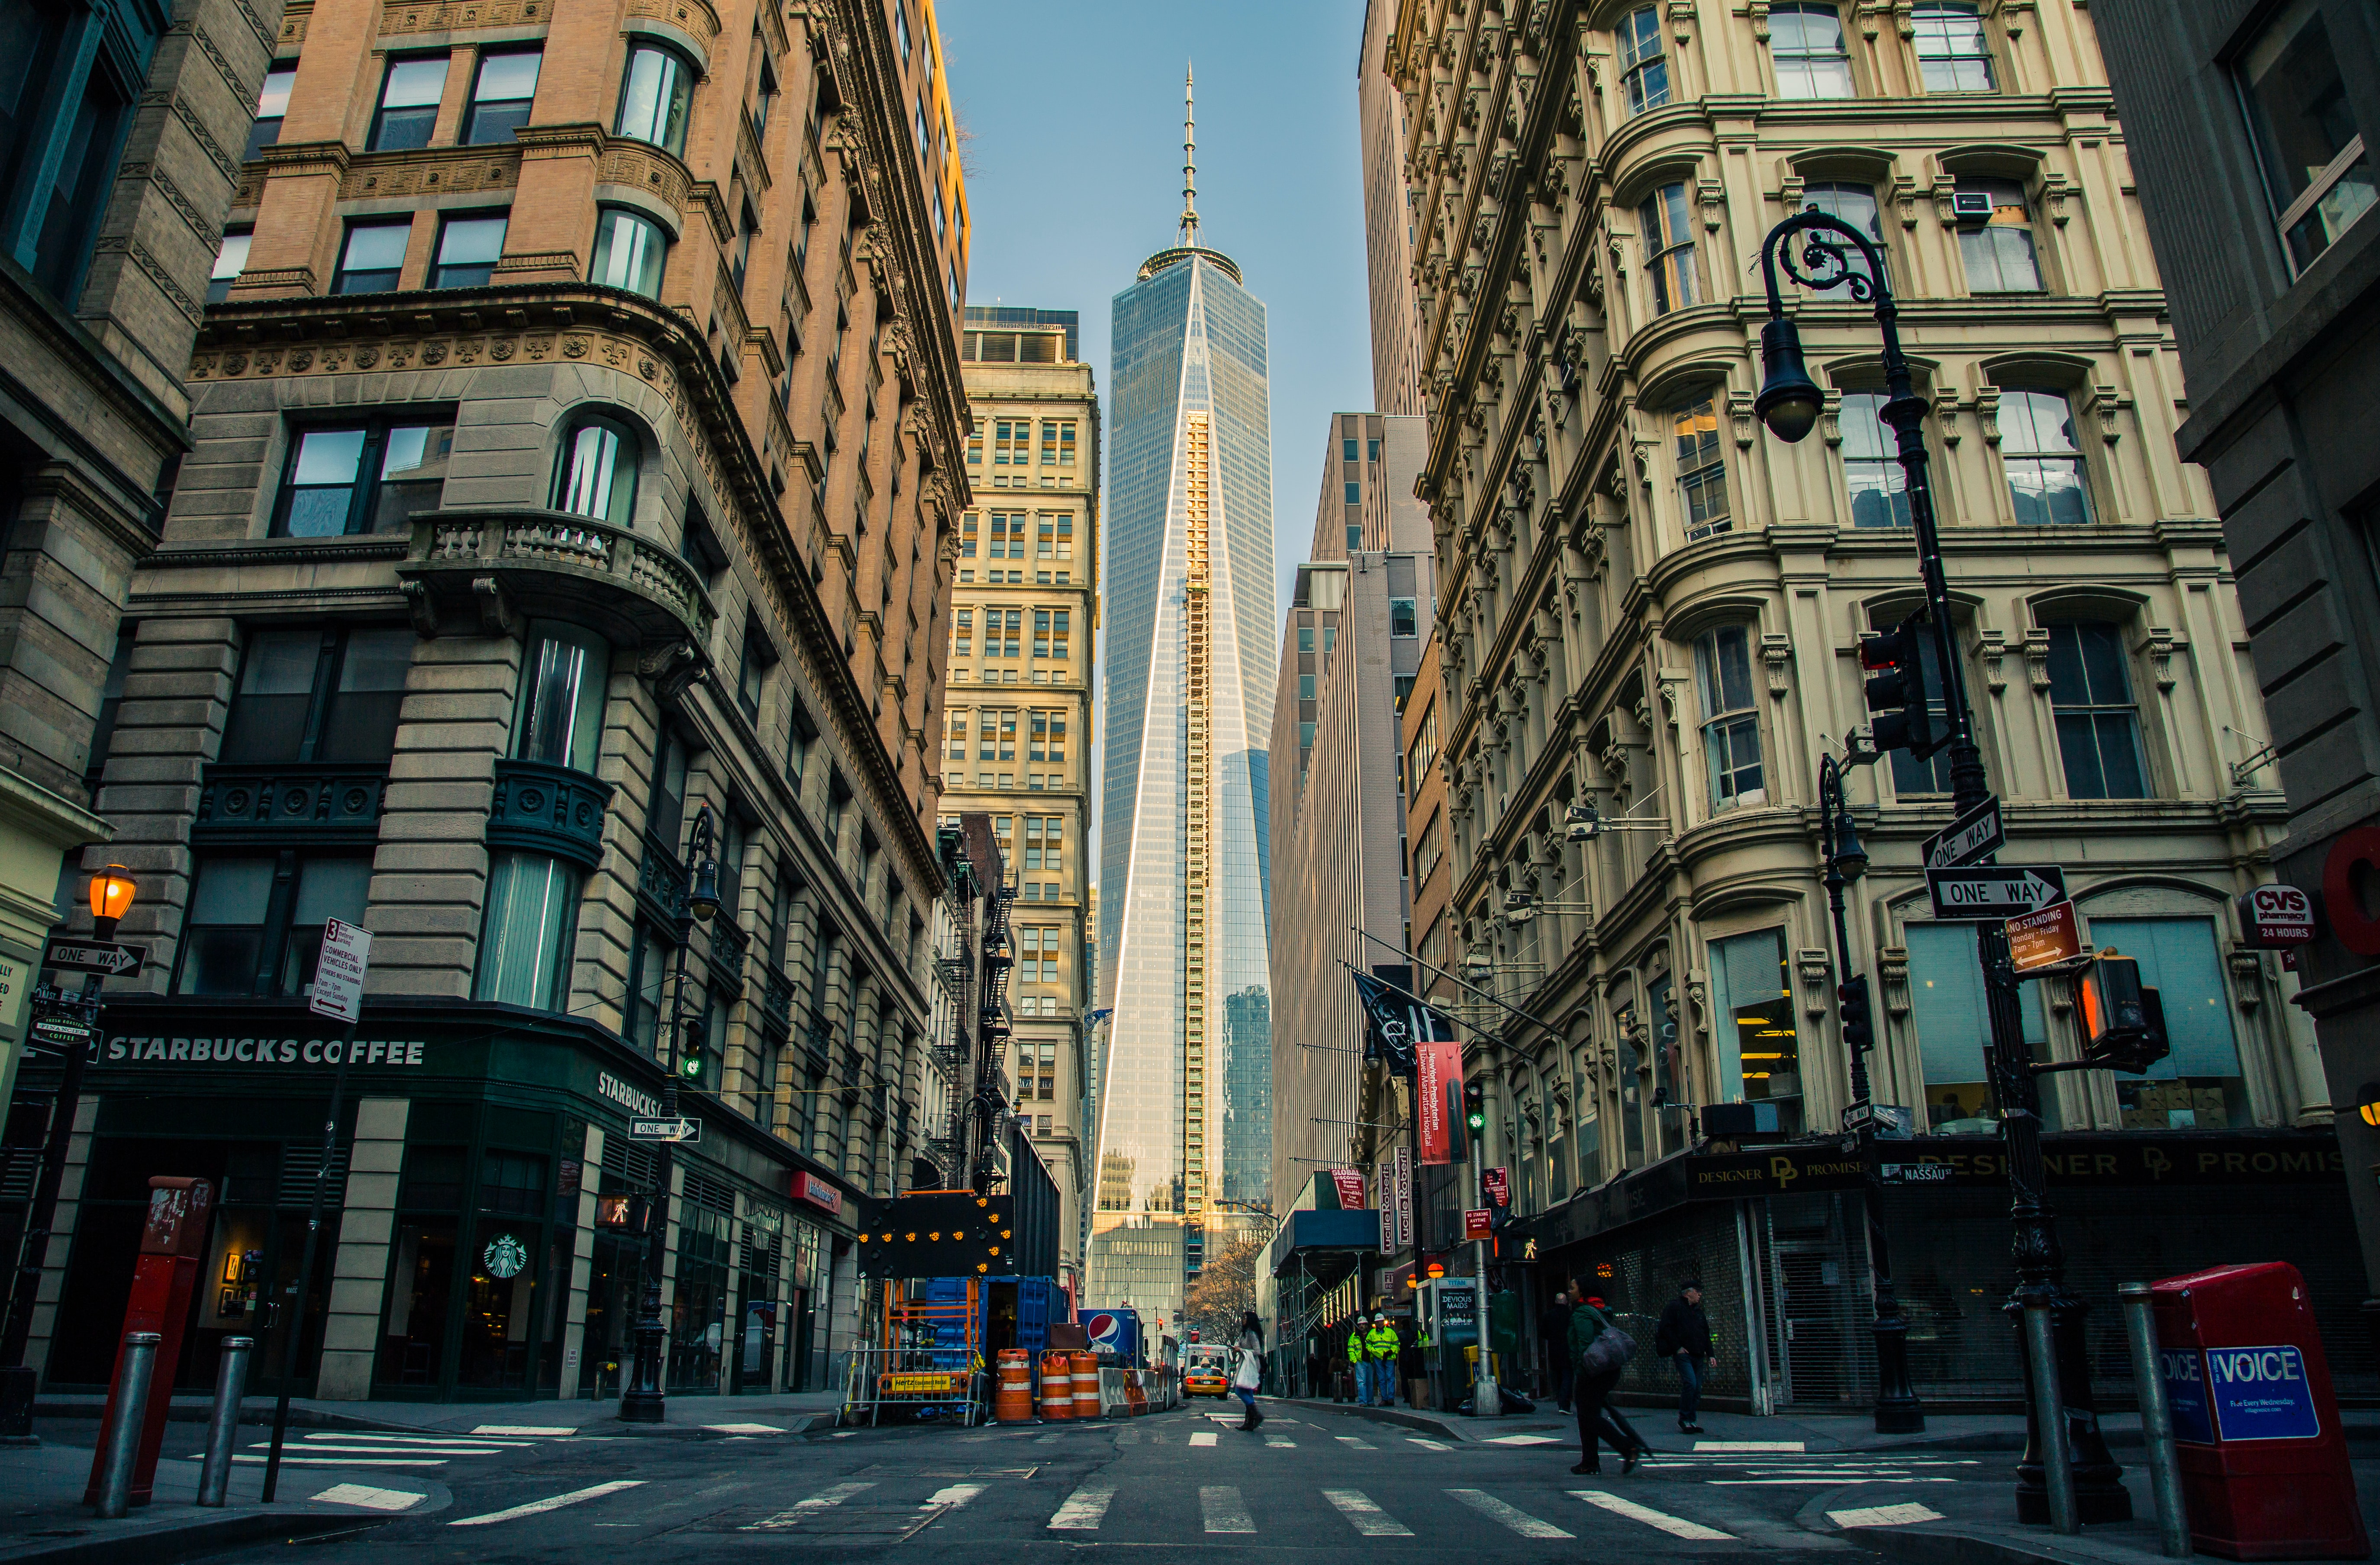 View of Freedom Tower in New York City in between buildings